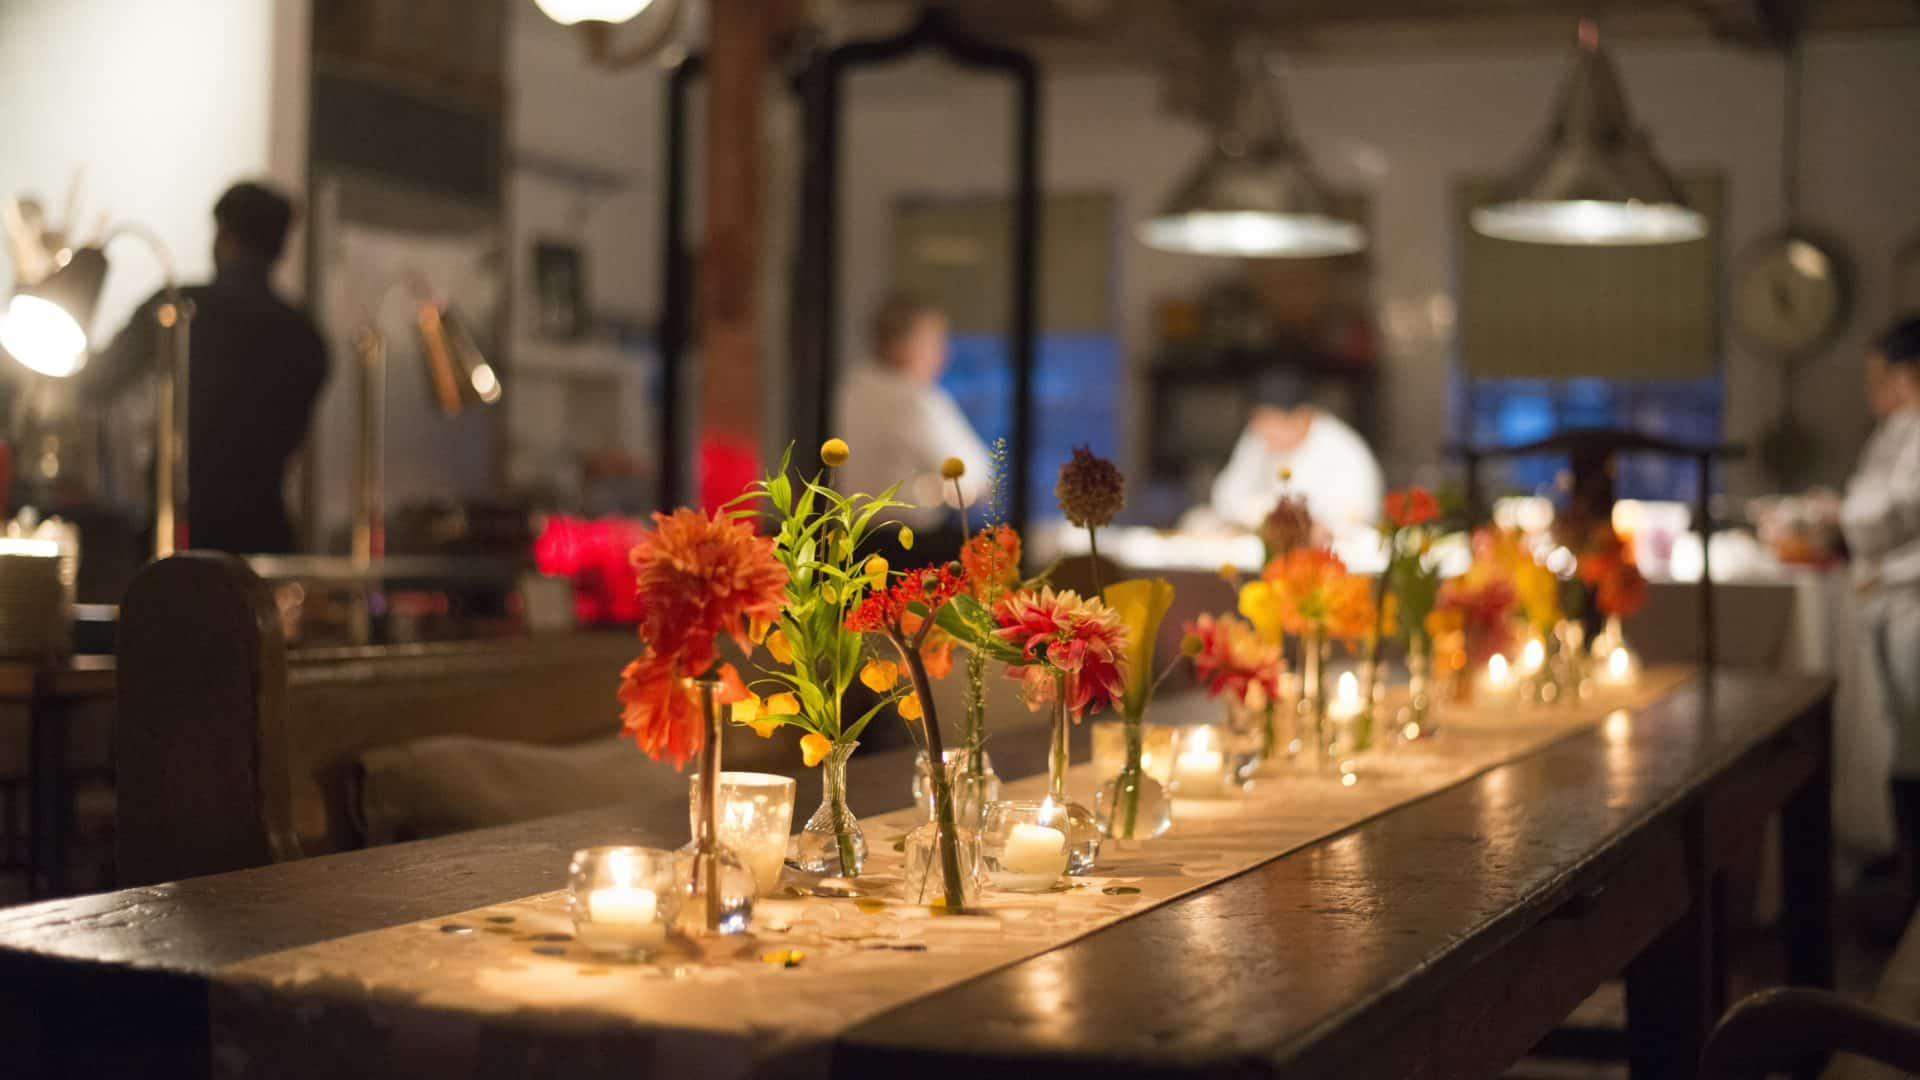 Florals and candles on a runner down a wooden kitchen table